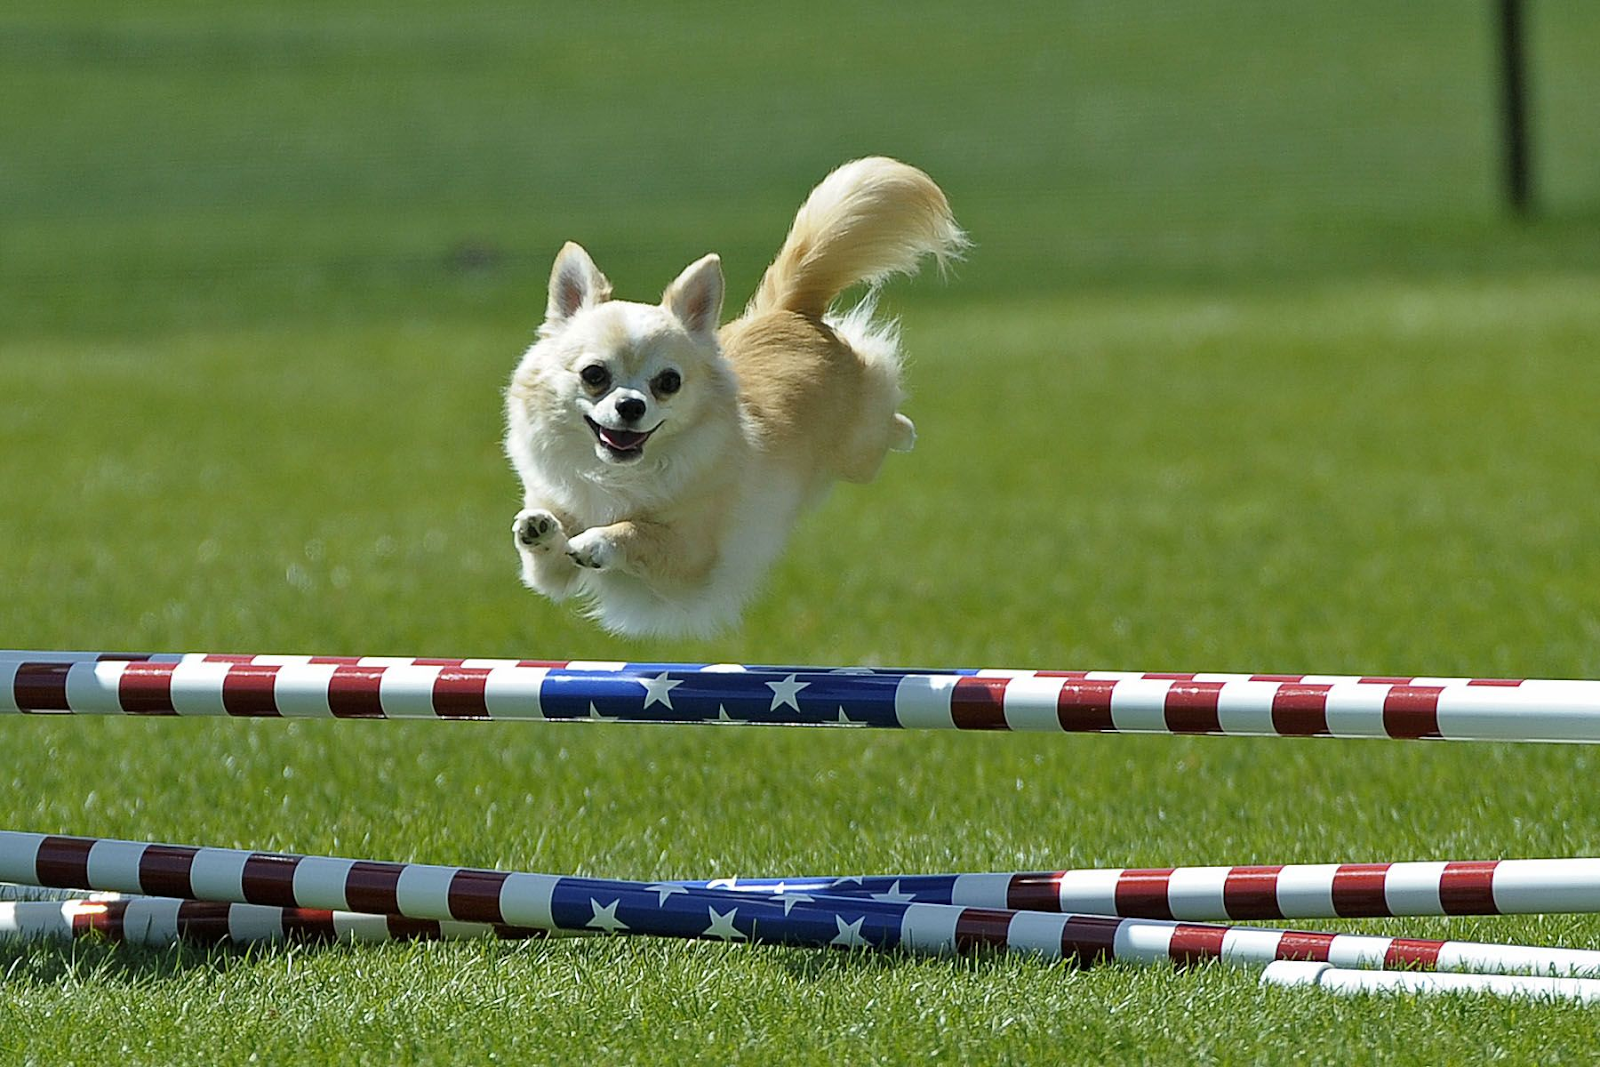 Chihuahua competing in dog show jumping over obstacles